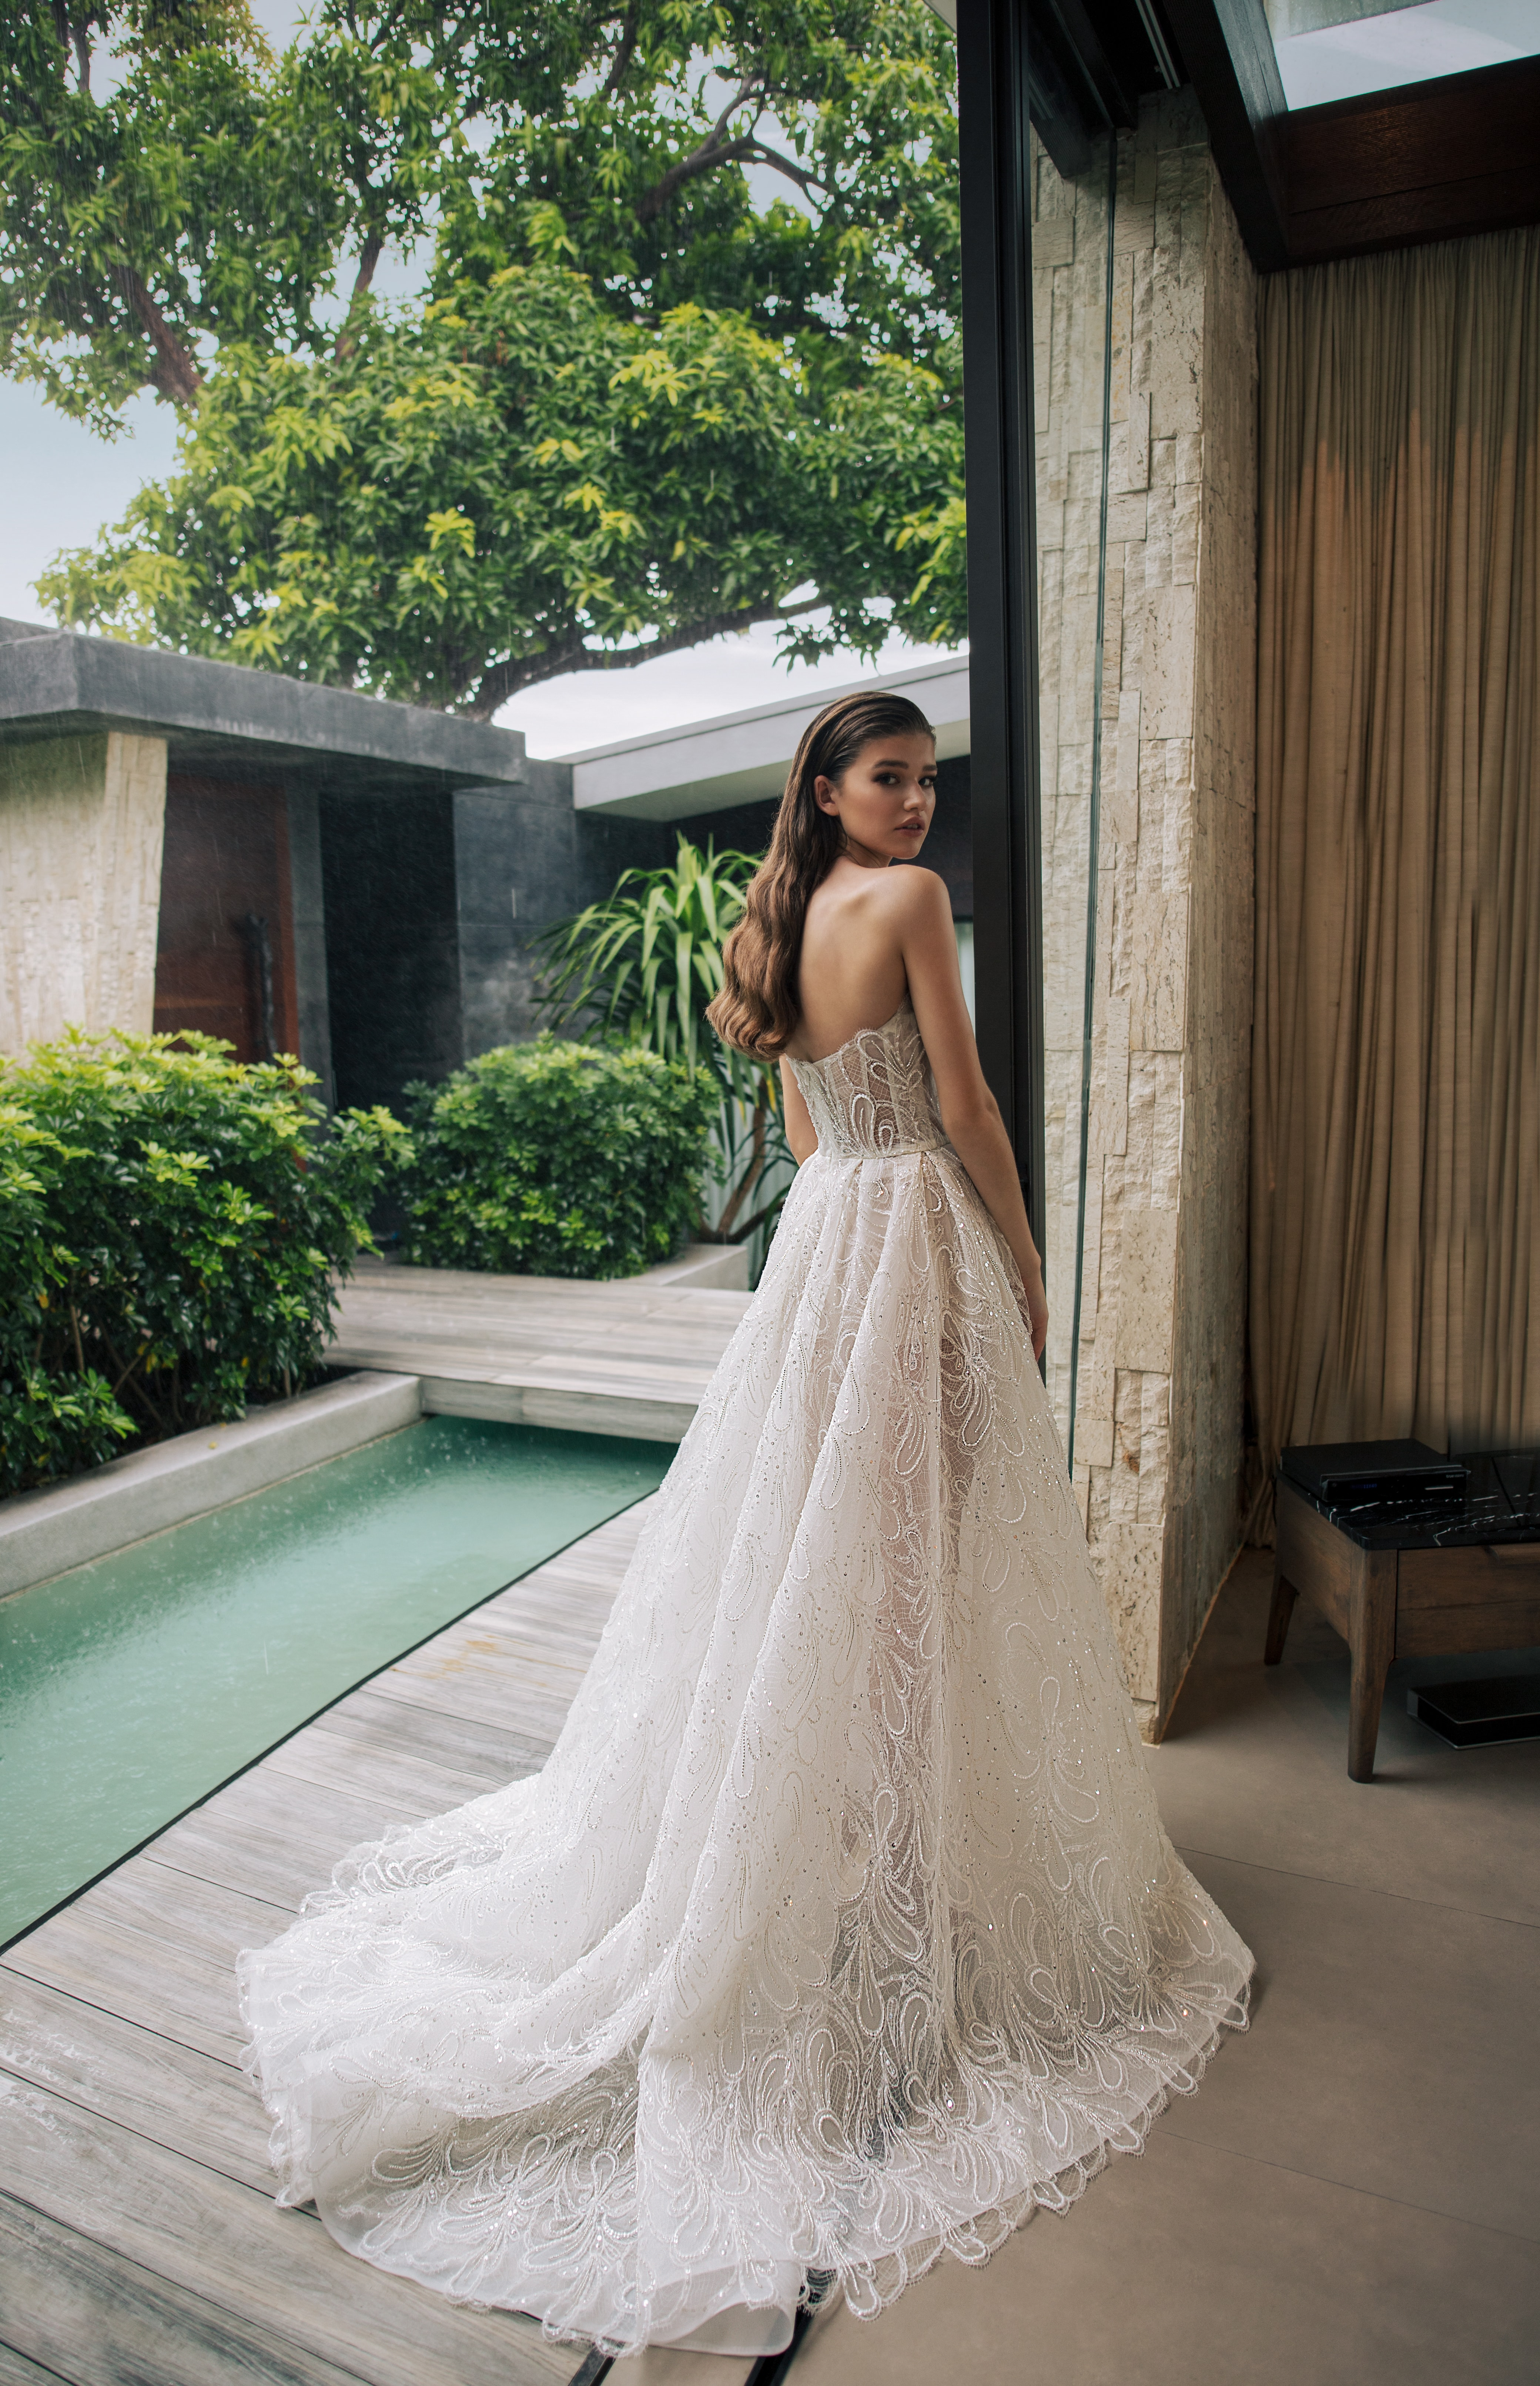 Modern Sophisticated Bride, With Nicole + Felicia Couture